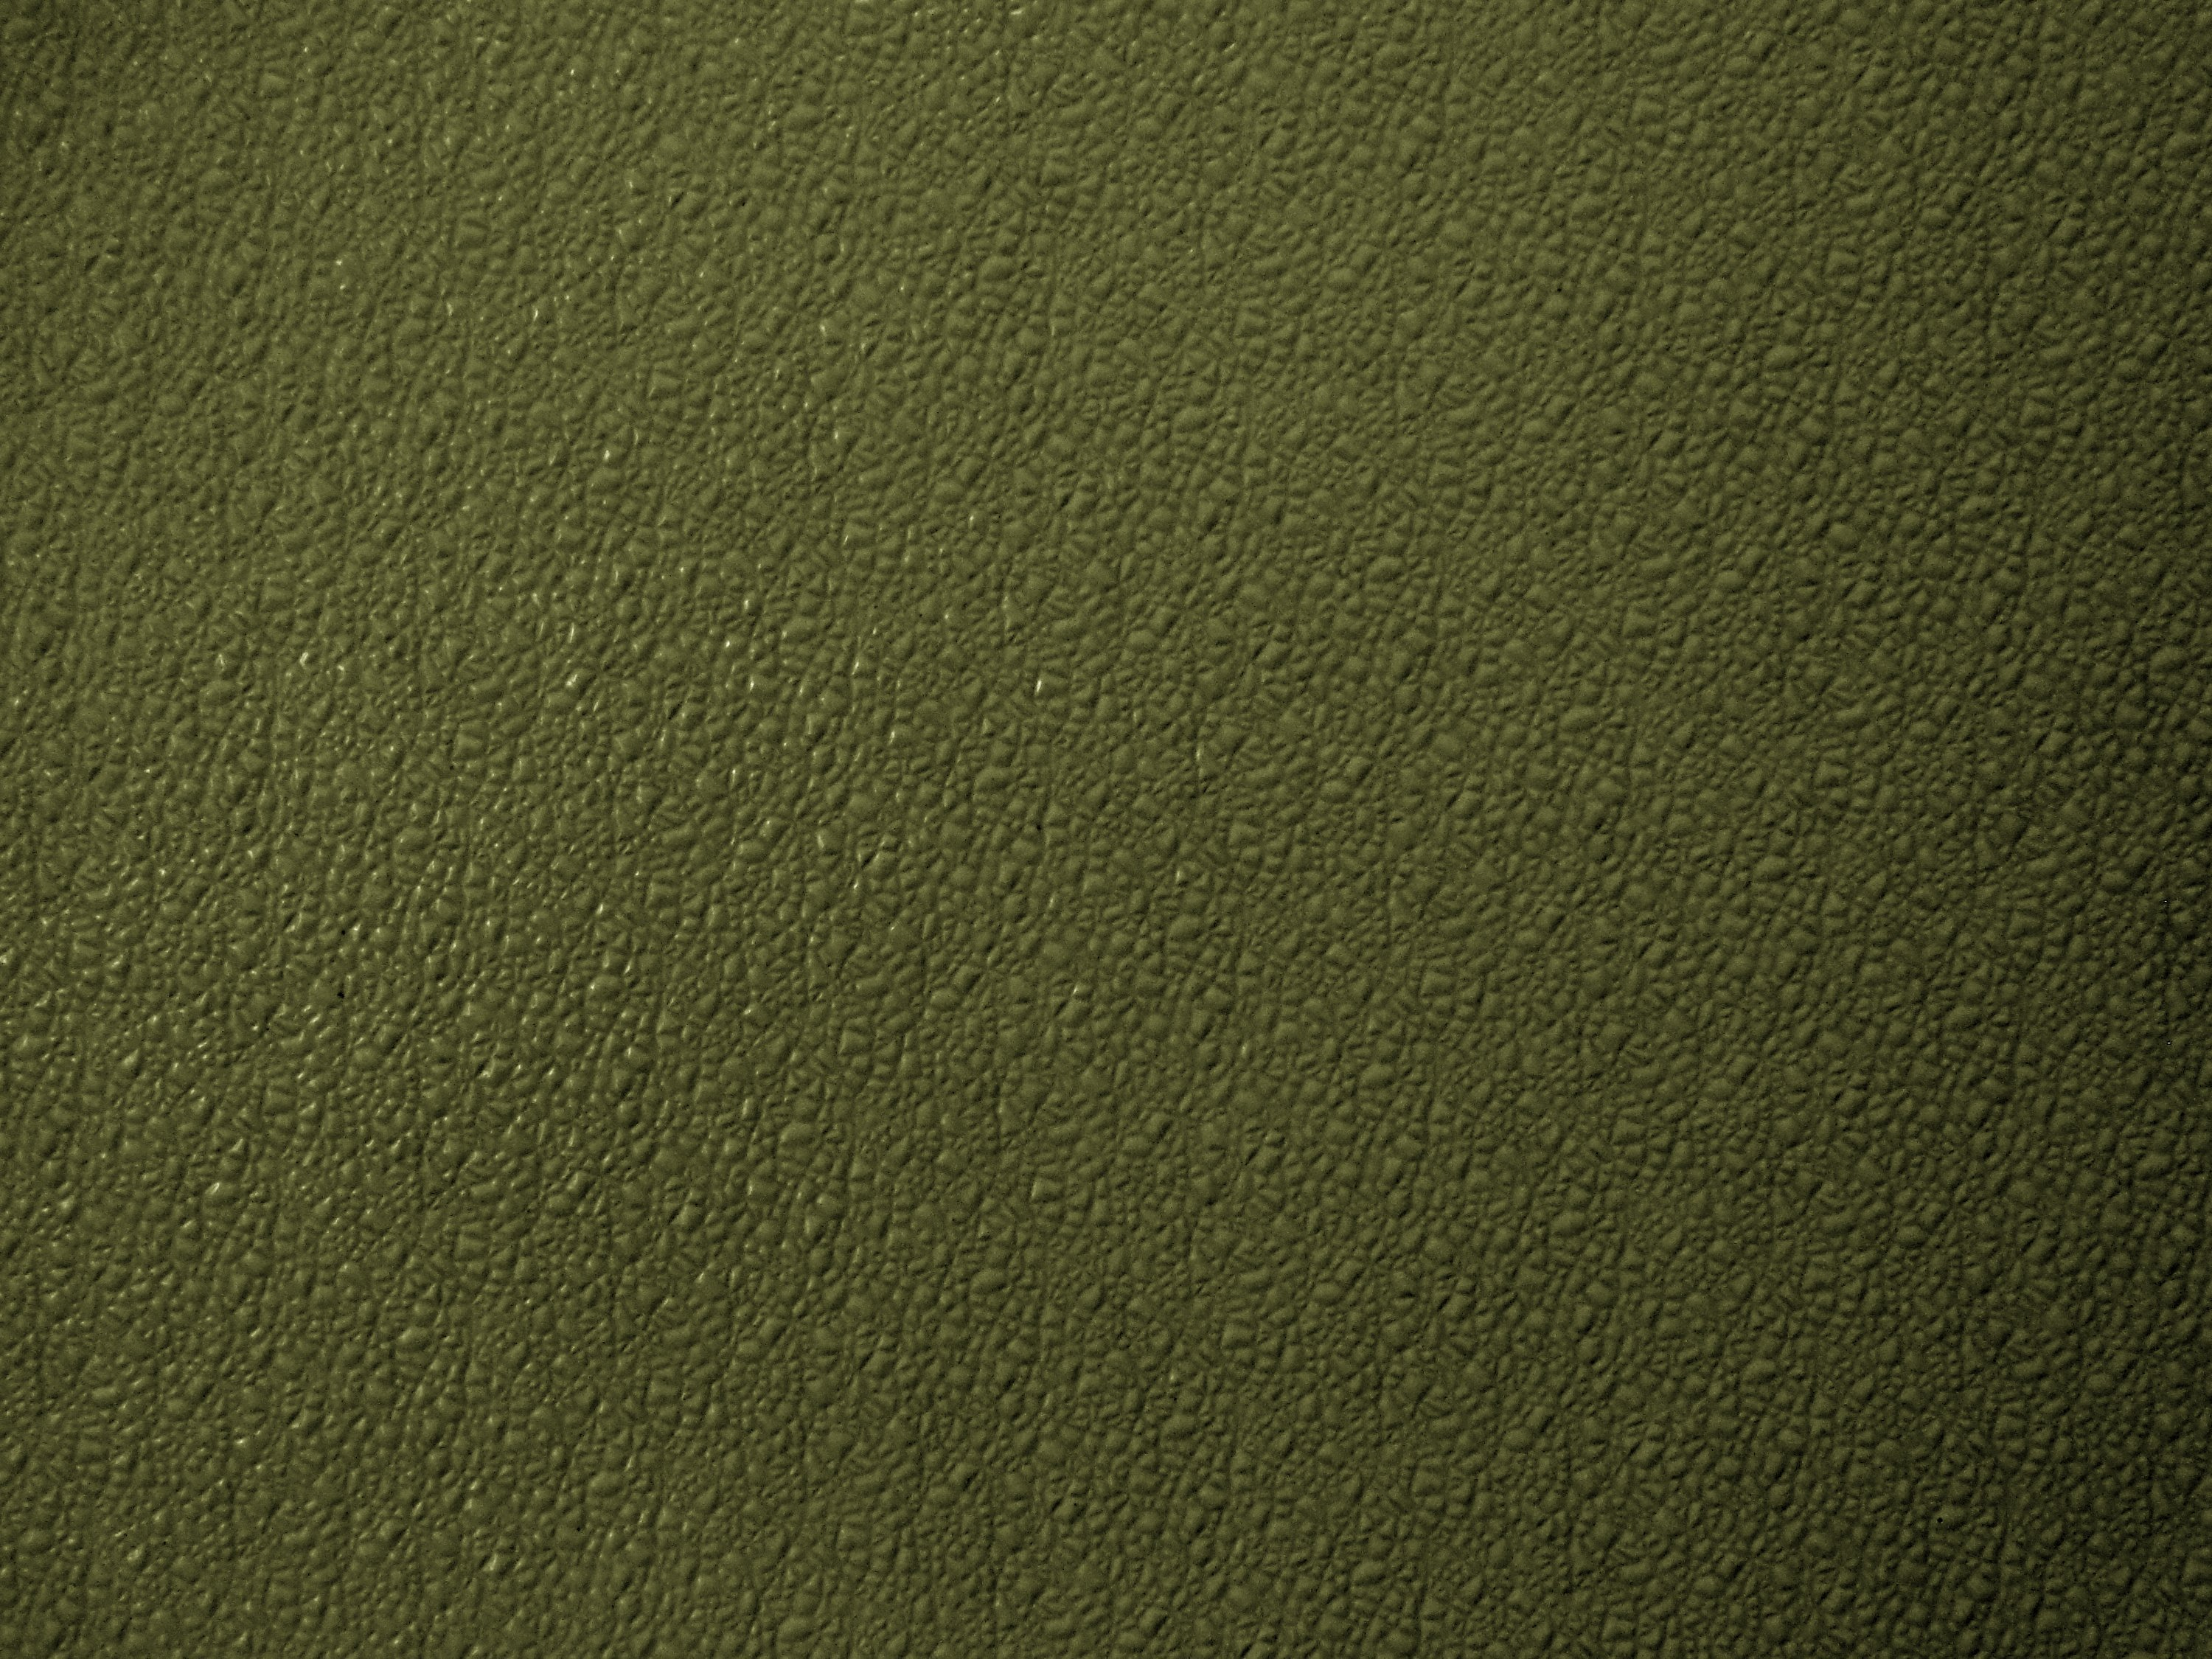 Olive Green Desktop Wallpaper Wallpapersafari